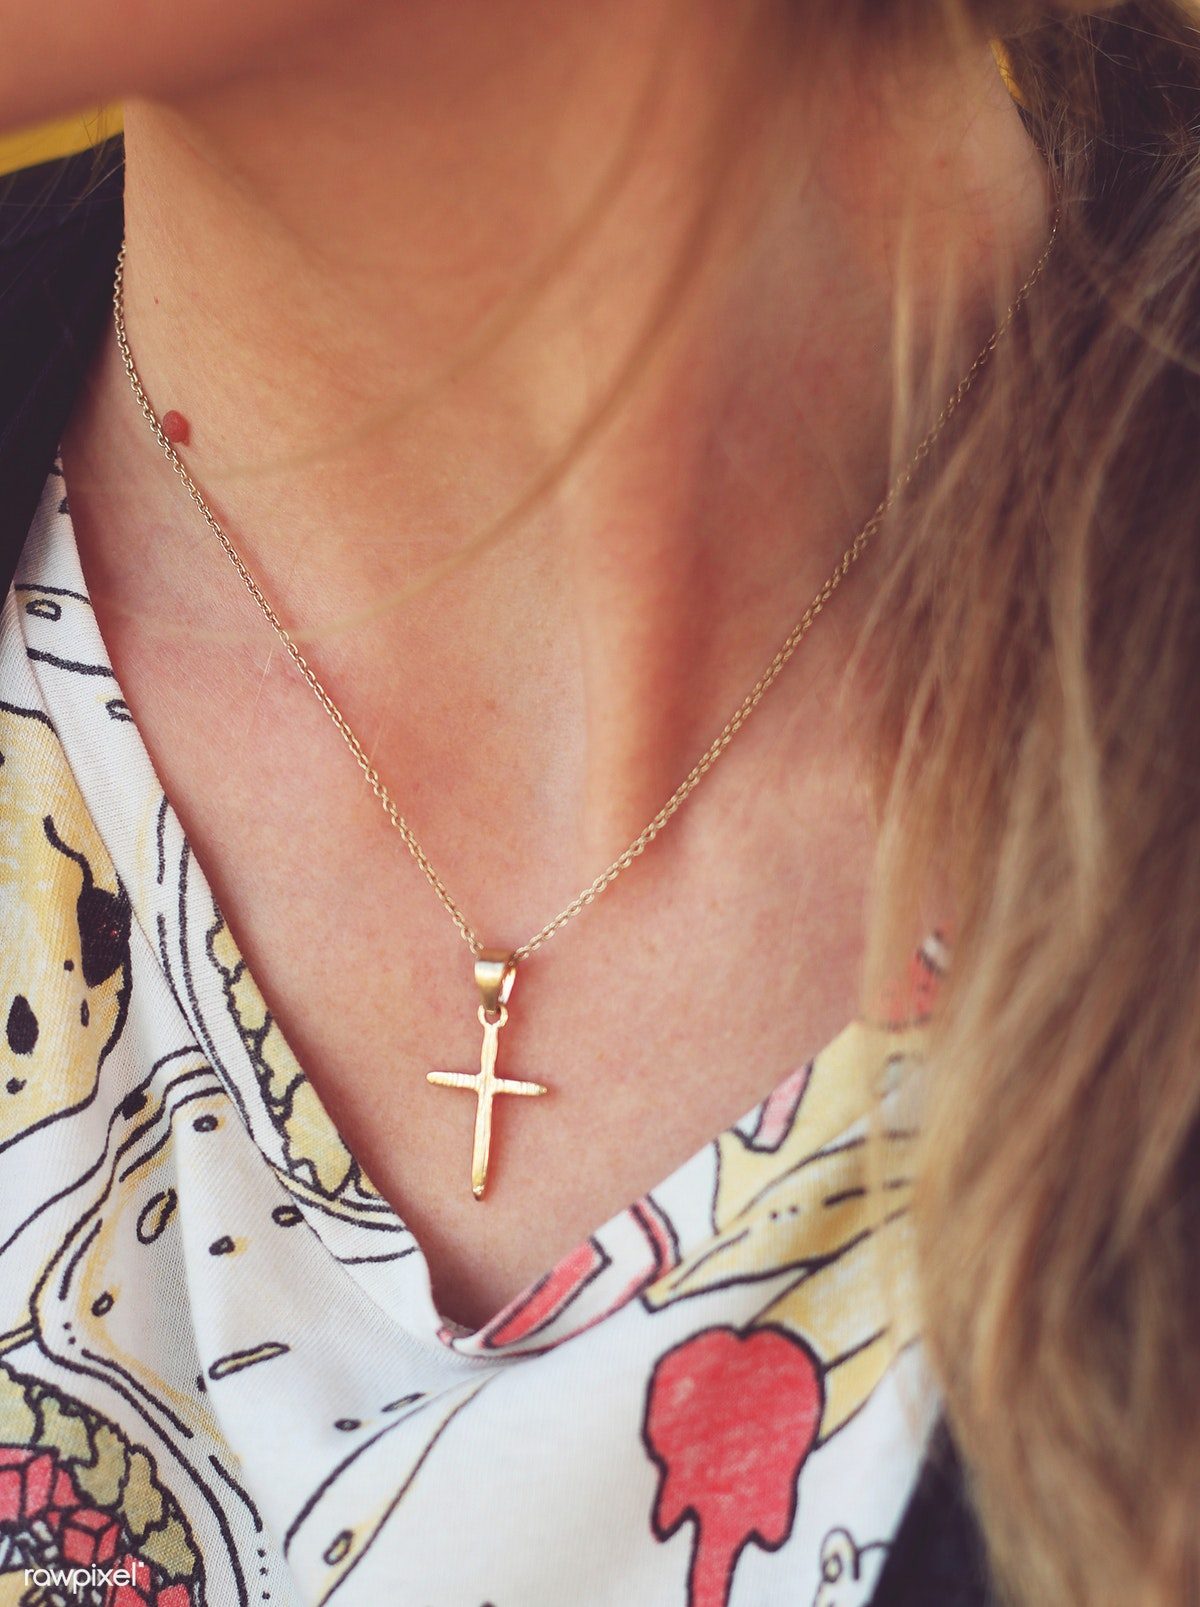 Woman with cross necklace